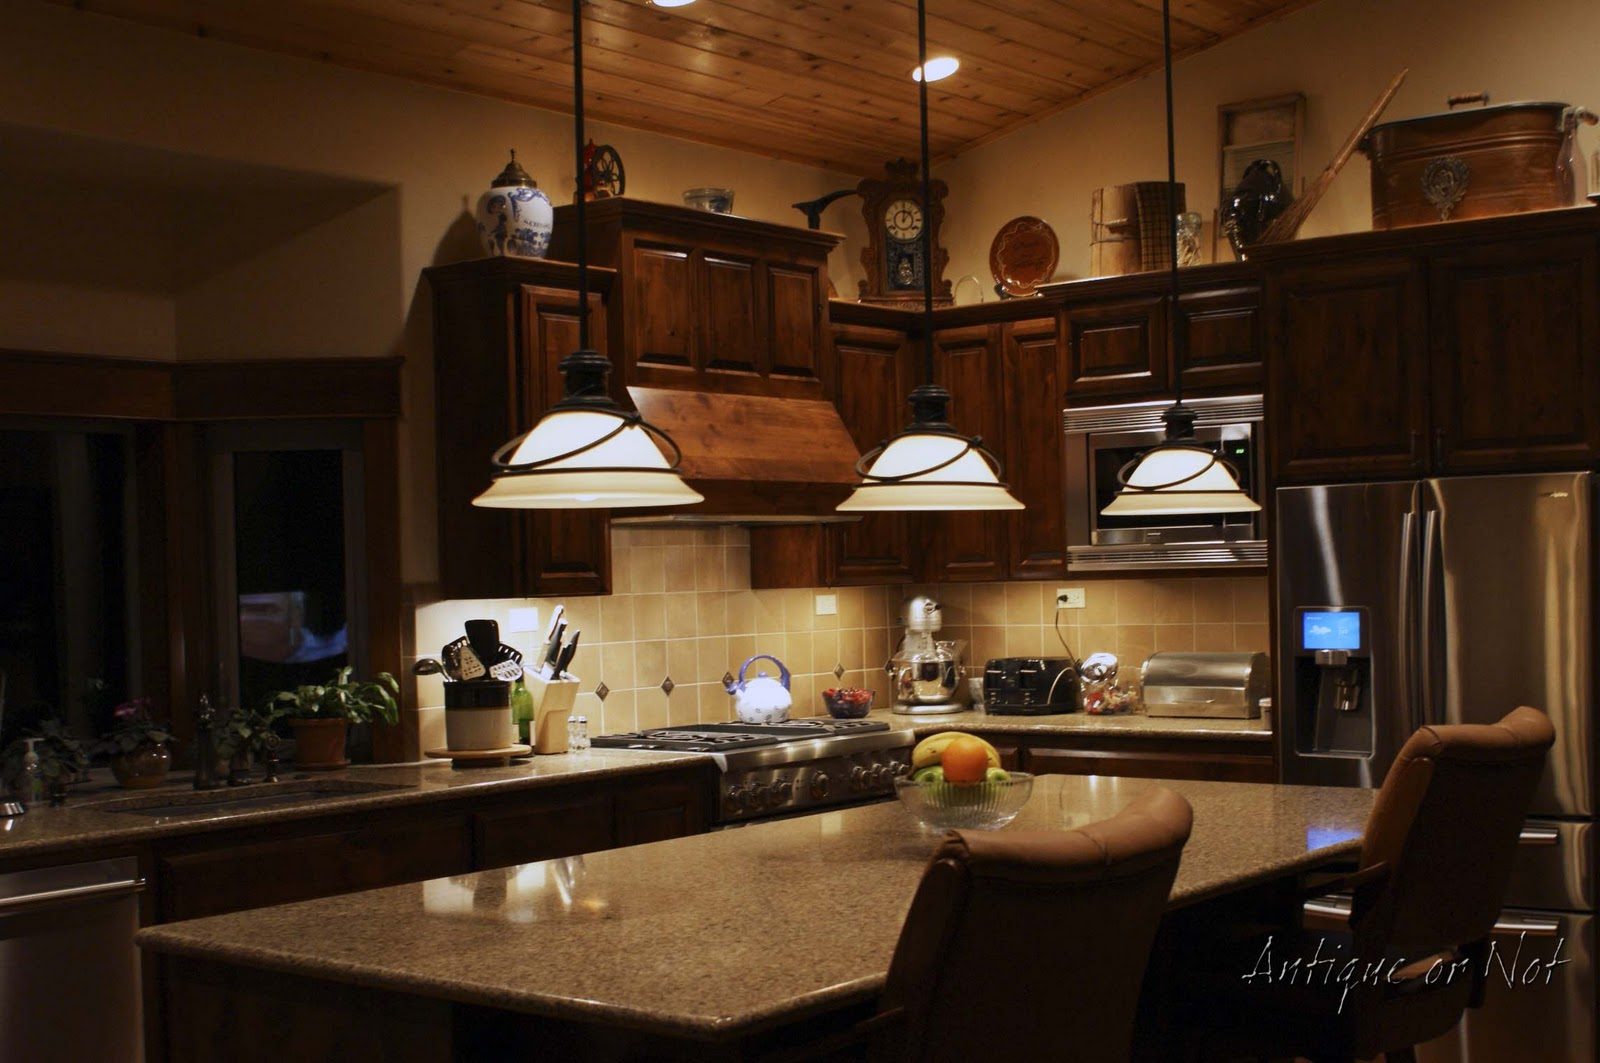 decorating cabinets decorating cabinets ideas kitchen cabinet tops decorate kitchen cabinet tops